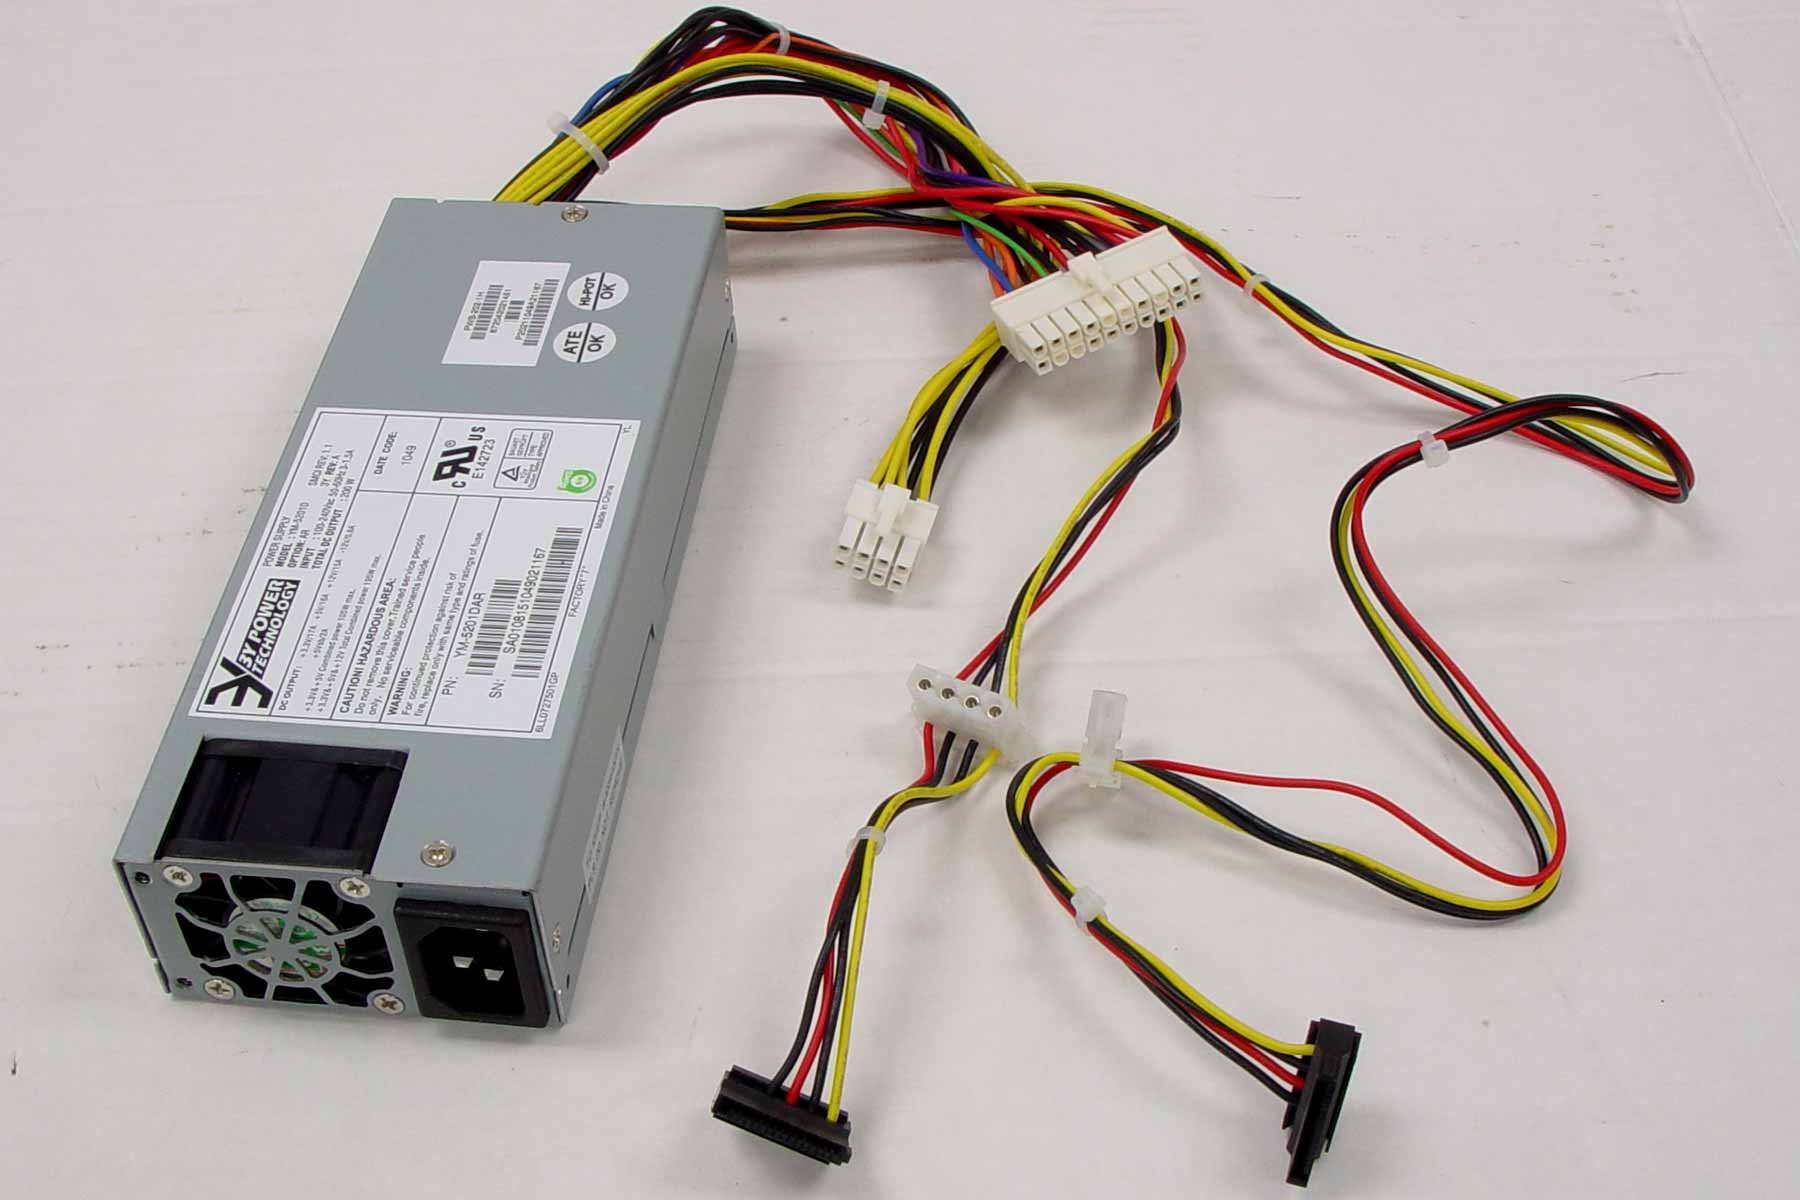 200W 1U Power Supply (202-1H)-1